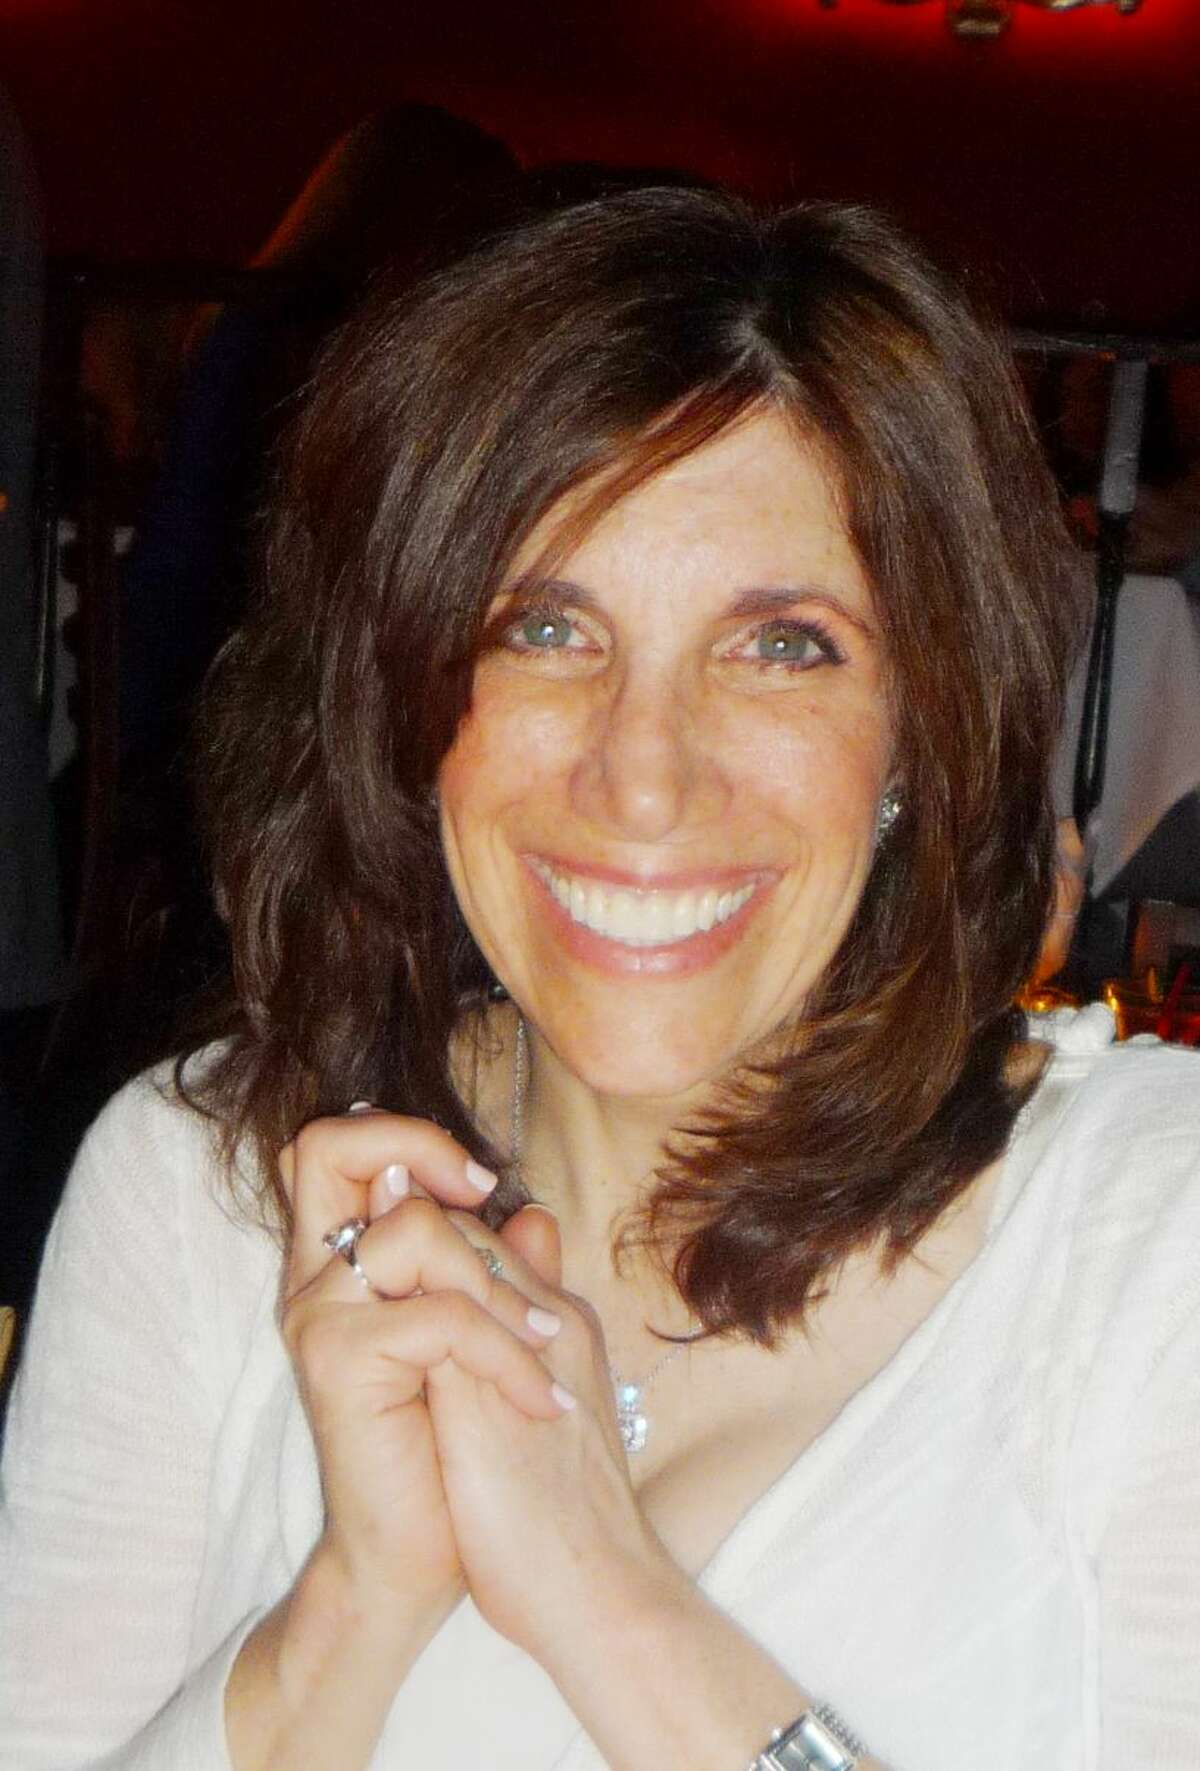 This photo provided by the Brody family shows an undated photo of Ellen Brody who was killed in the SUV that was hit by the train in New York Tuesday Feb. 3, 2015. The National Transportation Safety Board is looking into how familiar the SUV driver was with her car and her route, whether she was using a cellphone and whether the backed-up traffic played a role. (AP Photo/Family photo via Jeff Schaeffer)